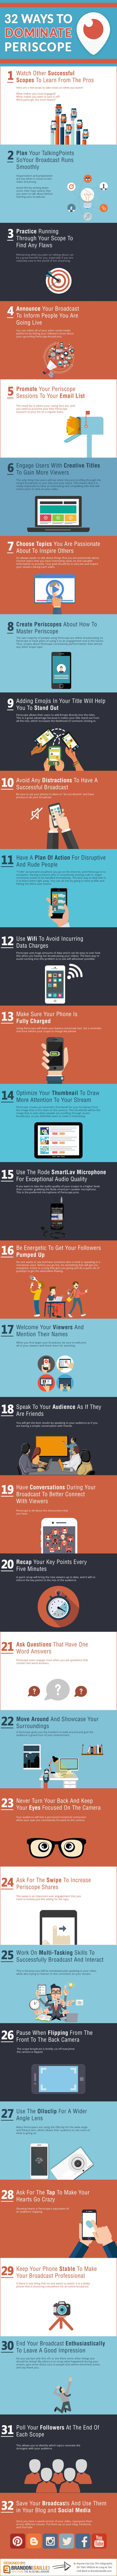 33 Incredible Periscope Tips from the Most Popular Scopes